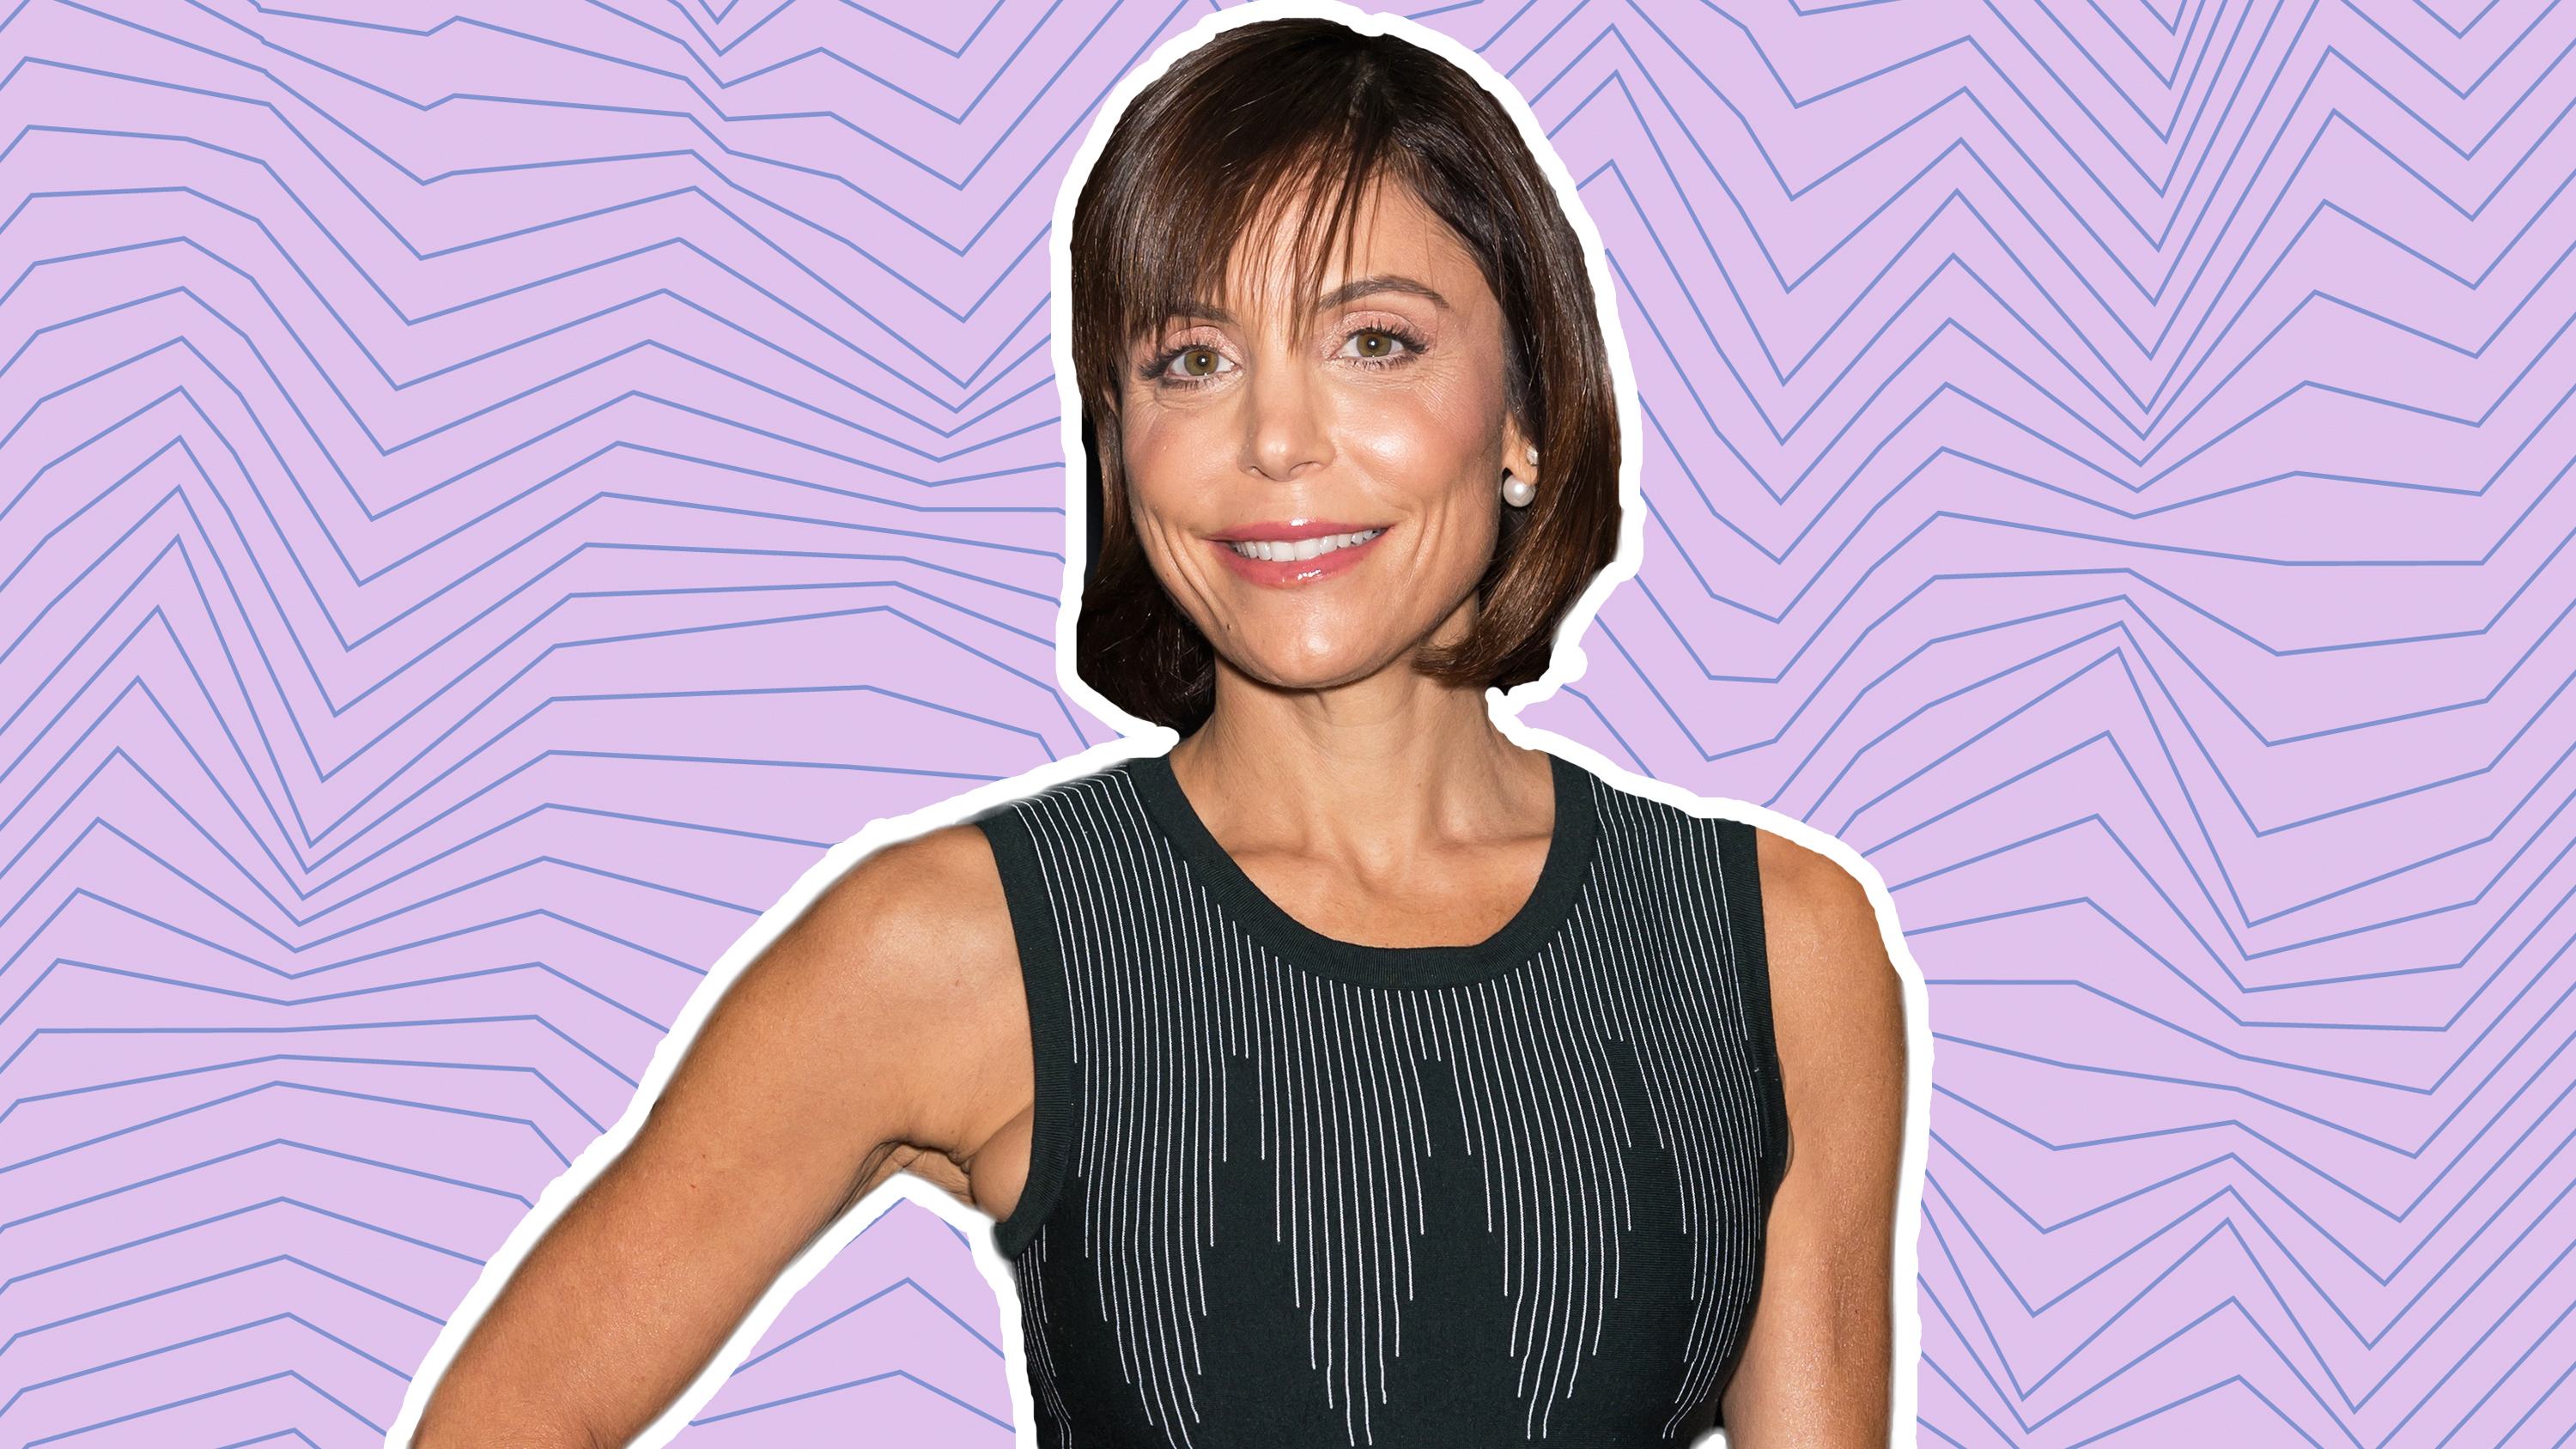 Reality TV personality, author, chef and  founder of Skinnygirl Cocktails, Bethenny Frankel attends the 2016 Evening Of Giving, benefitting Abramson Cancer Center at King of Prussia Mall on September 25, 2016 in King of Prussia, Pennsylvania.